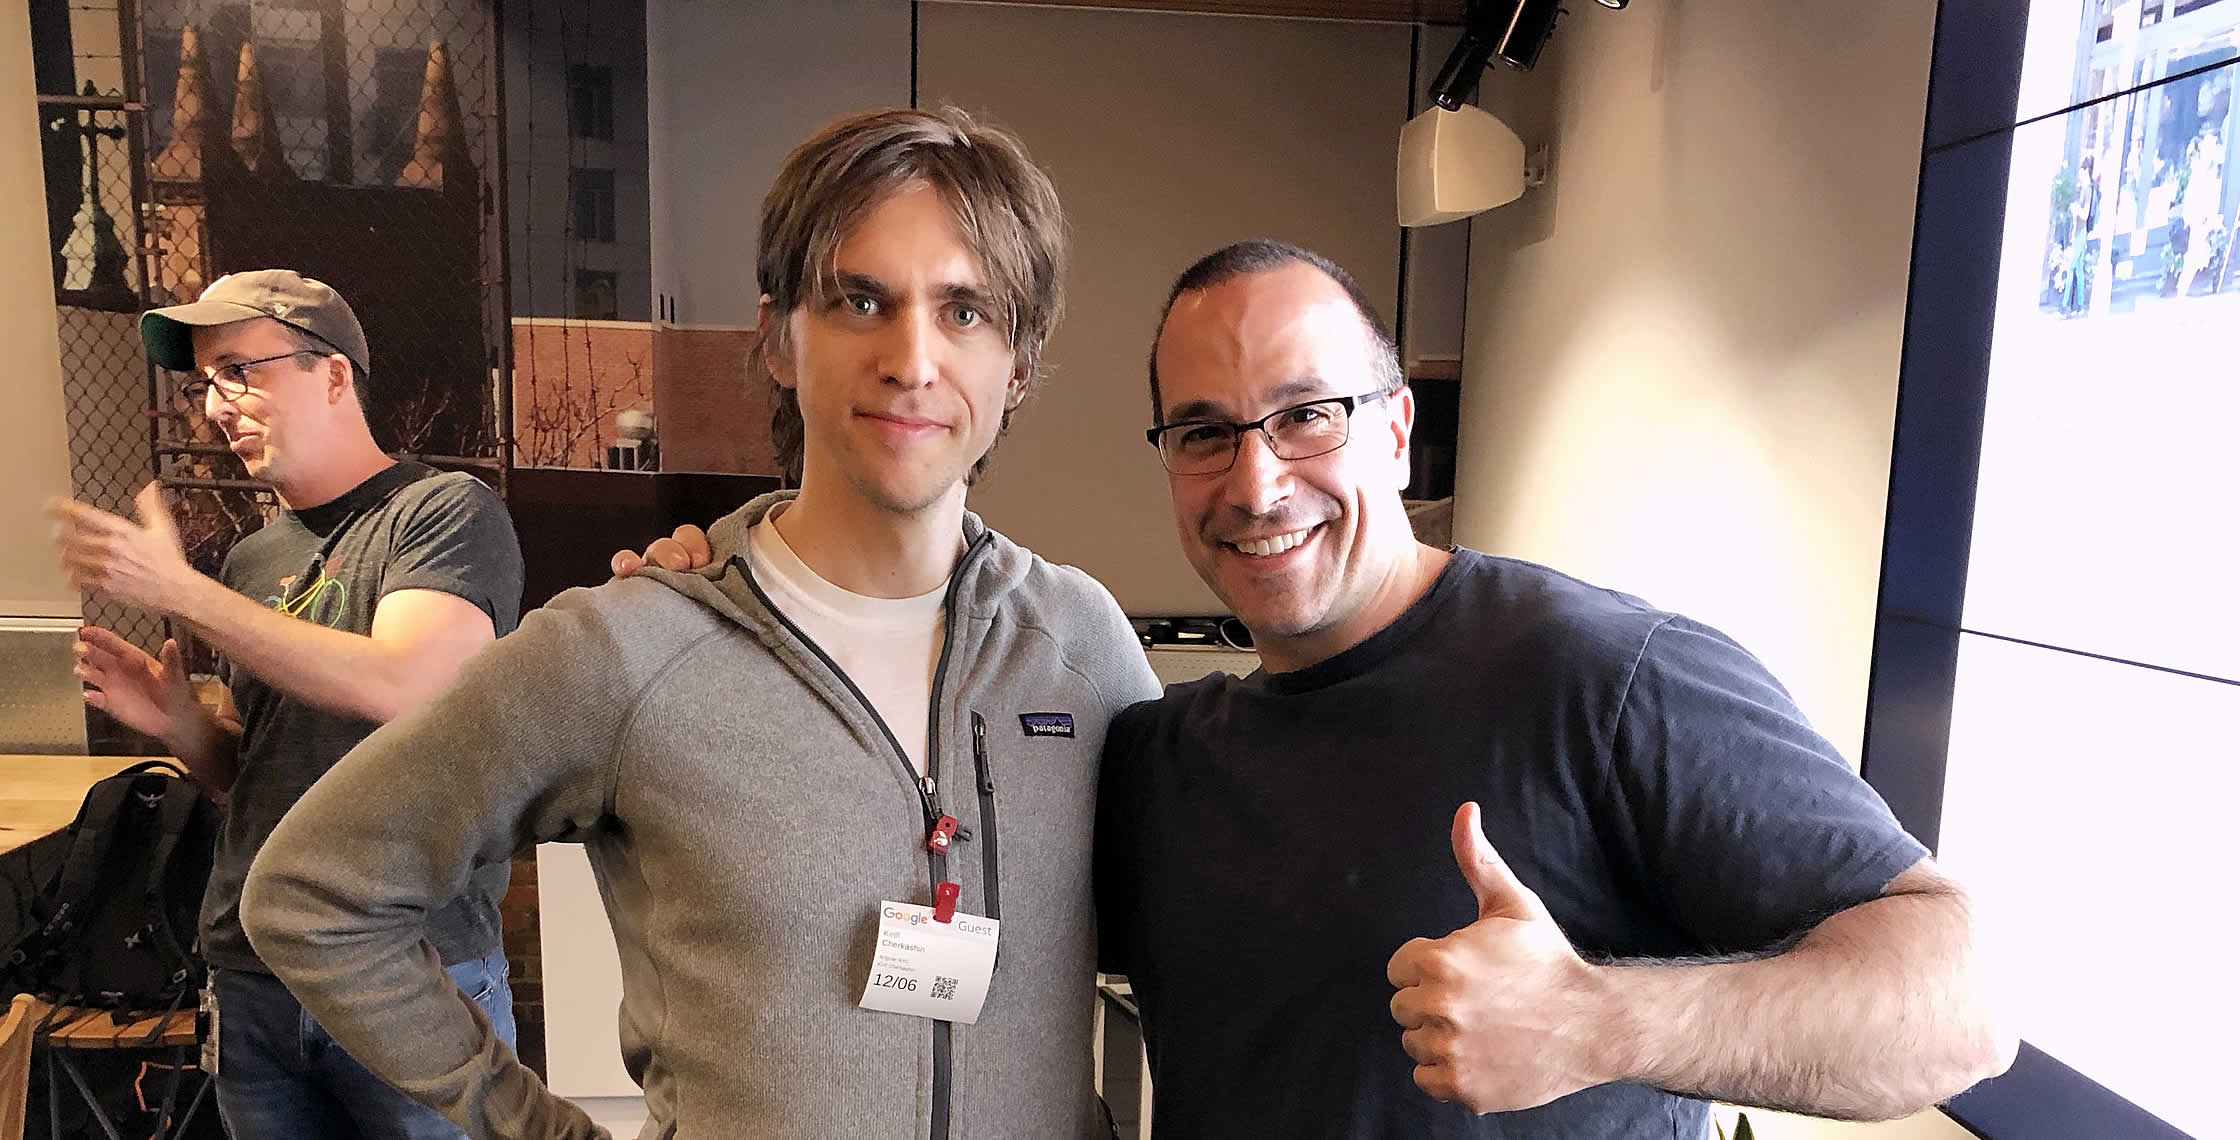 Ben Nadel at the Angular NYC Meetup (Dec. 2018) with: Kirill Cherkashin